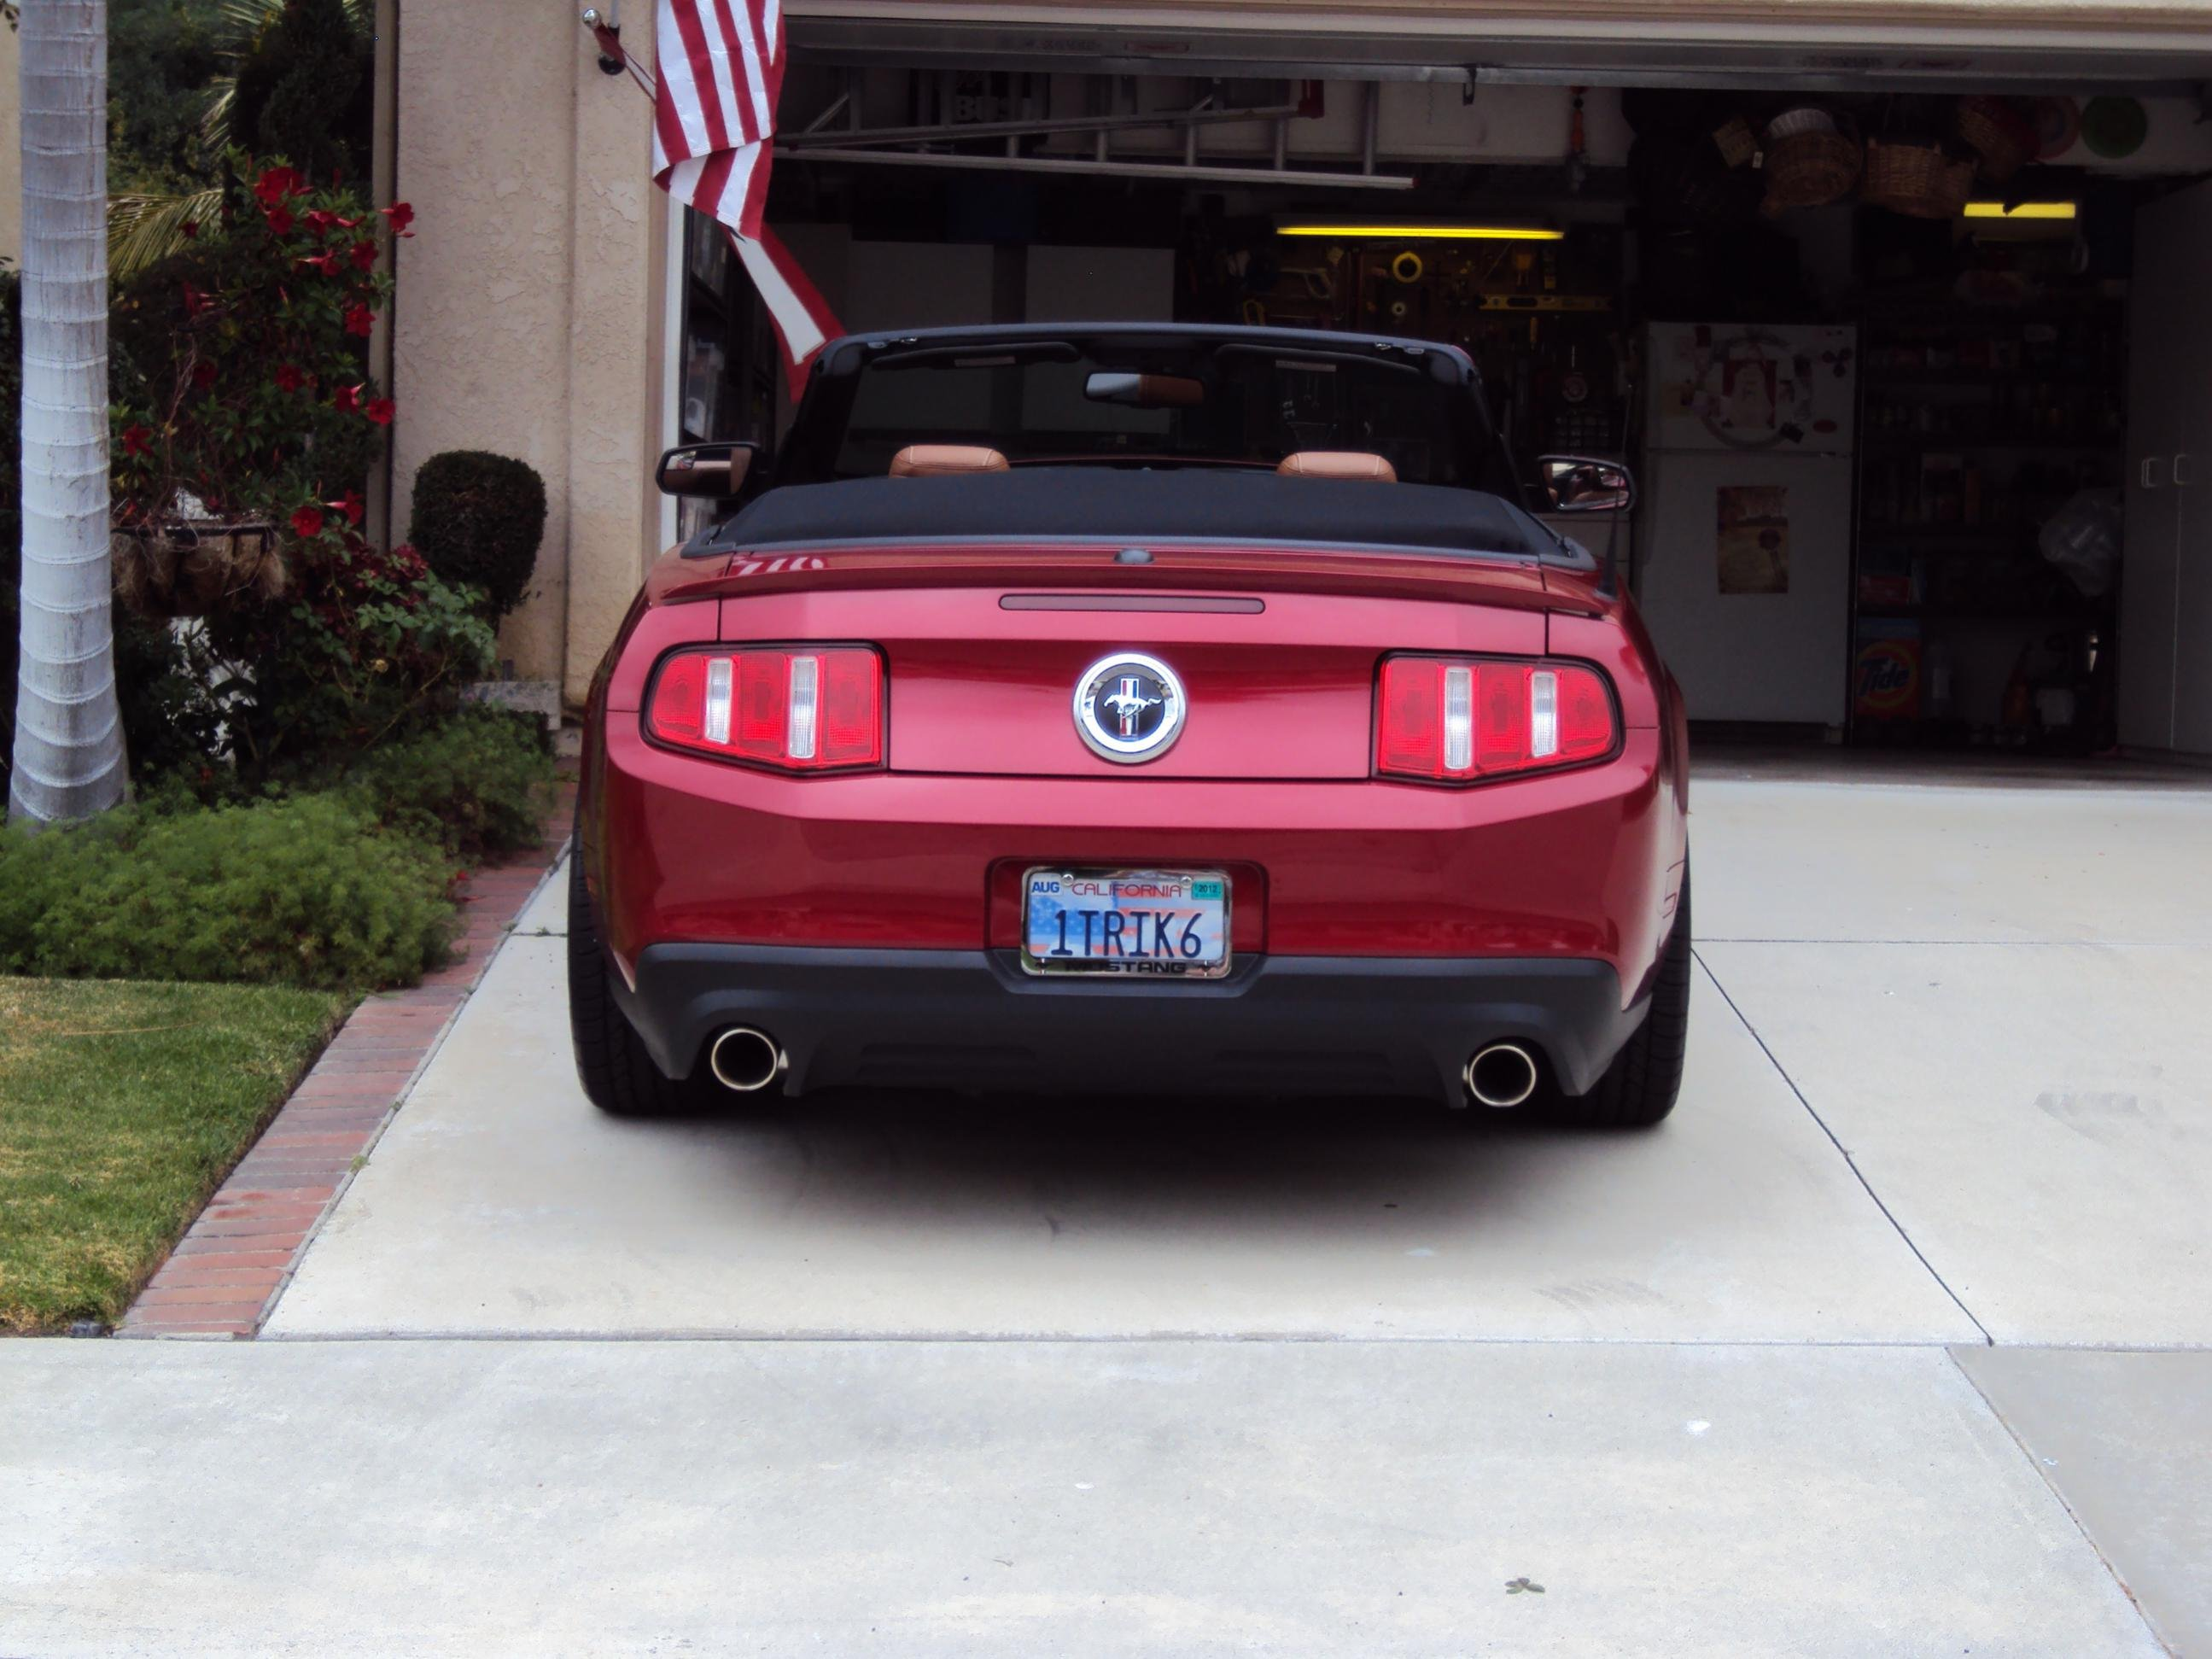 Customized Mustang >> Personalized license plate ideas - Page 3 - Ford Mustang Forum